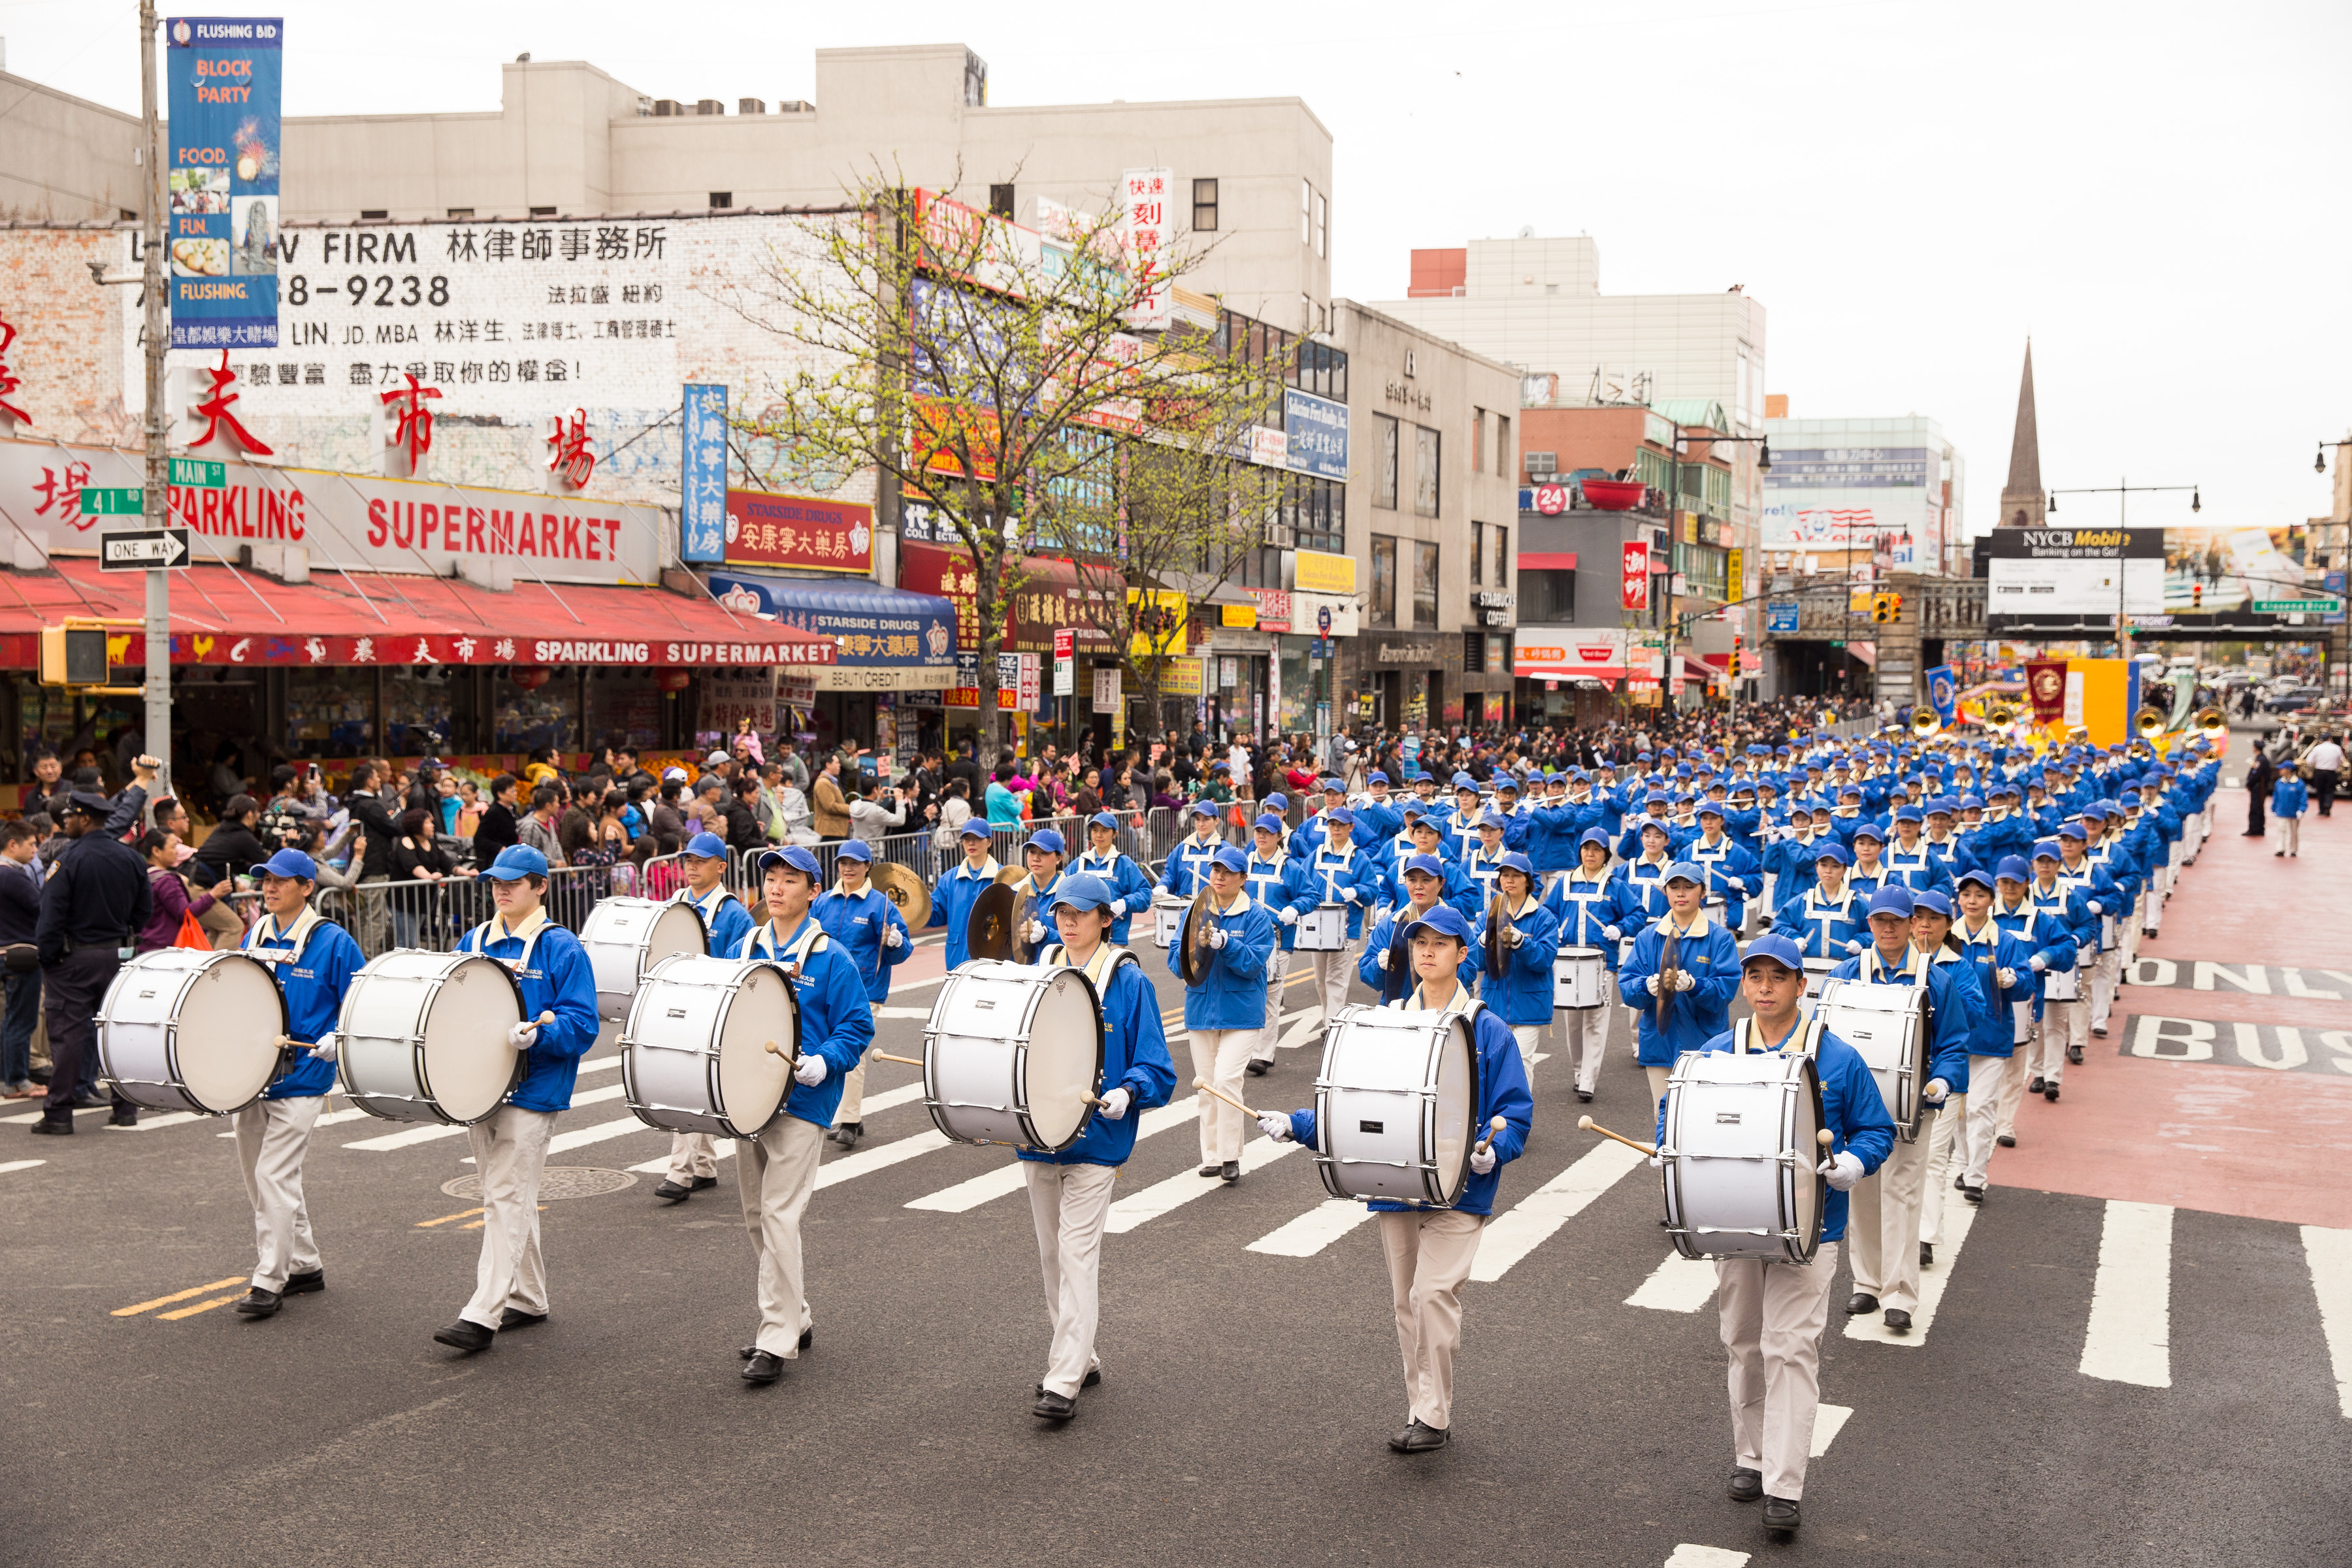 members of the Tian Guo marching band perform in the Flushing parade. (Larry Dye/Epoch Times)